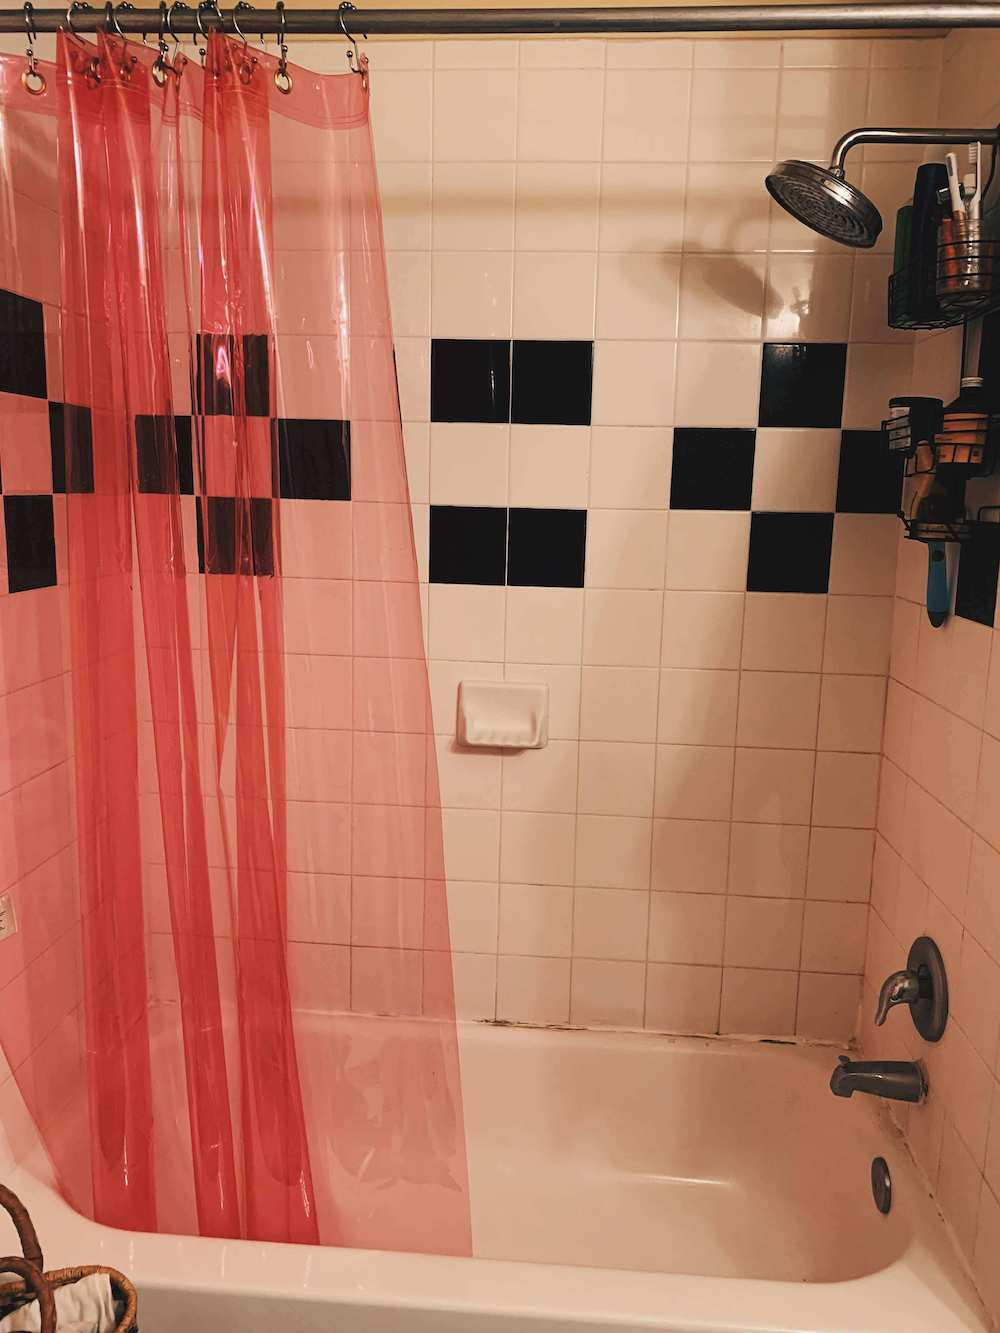 after shot of the shower with a hanging, brass shower organizer and a bright pink transluscent shower curtain